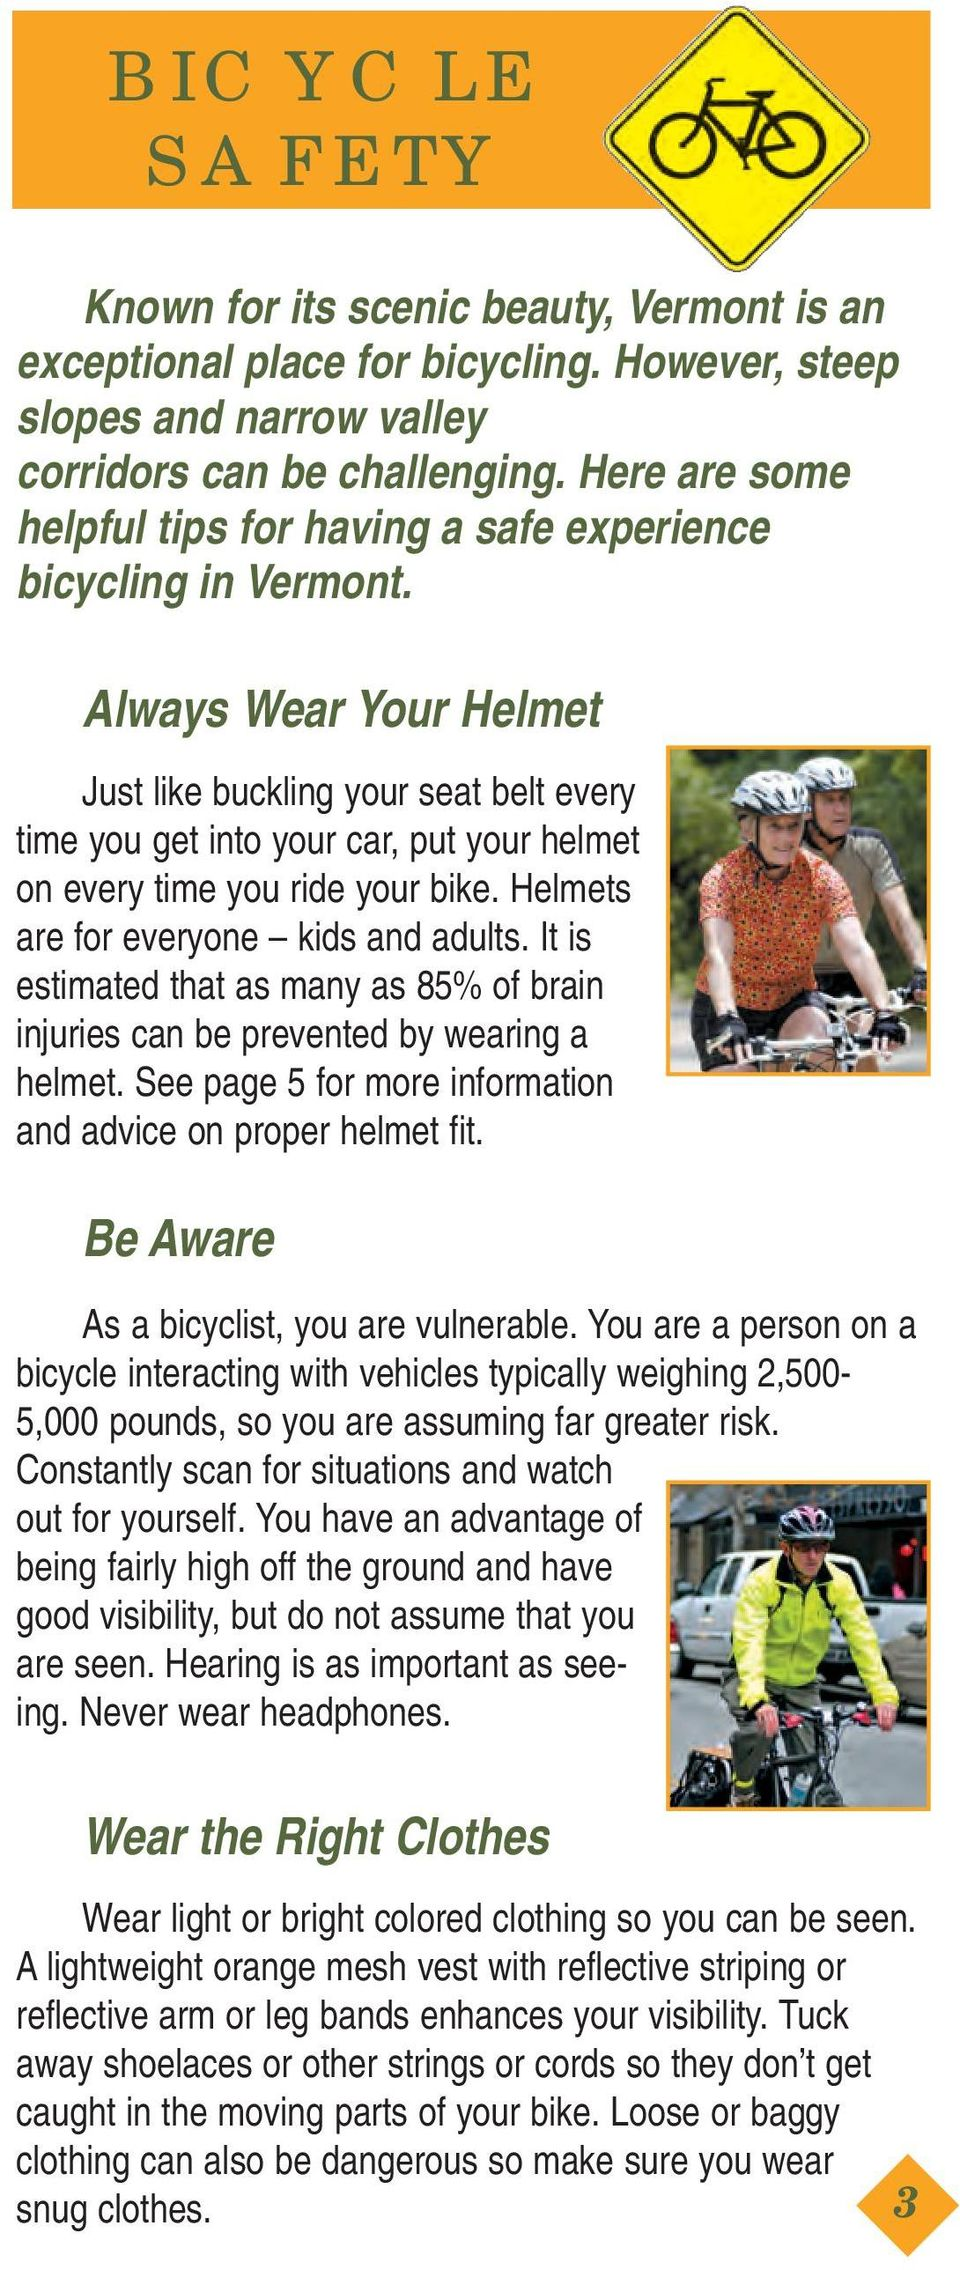 Always Wear Your Helmet Just like buckling your seat belt every time you get into your car, put your helmet on every time you ride your bike. Helmets are for everyone kids and adults.